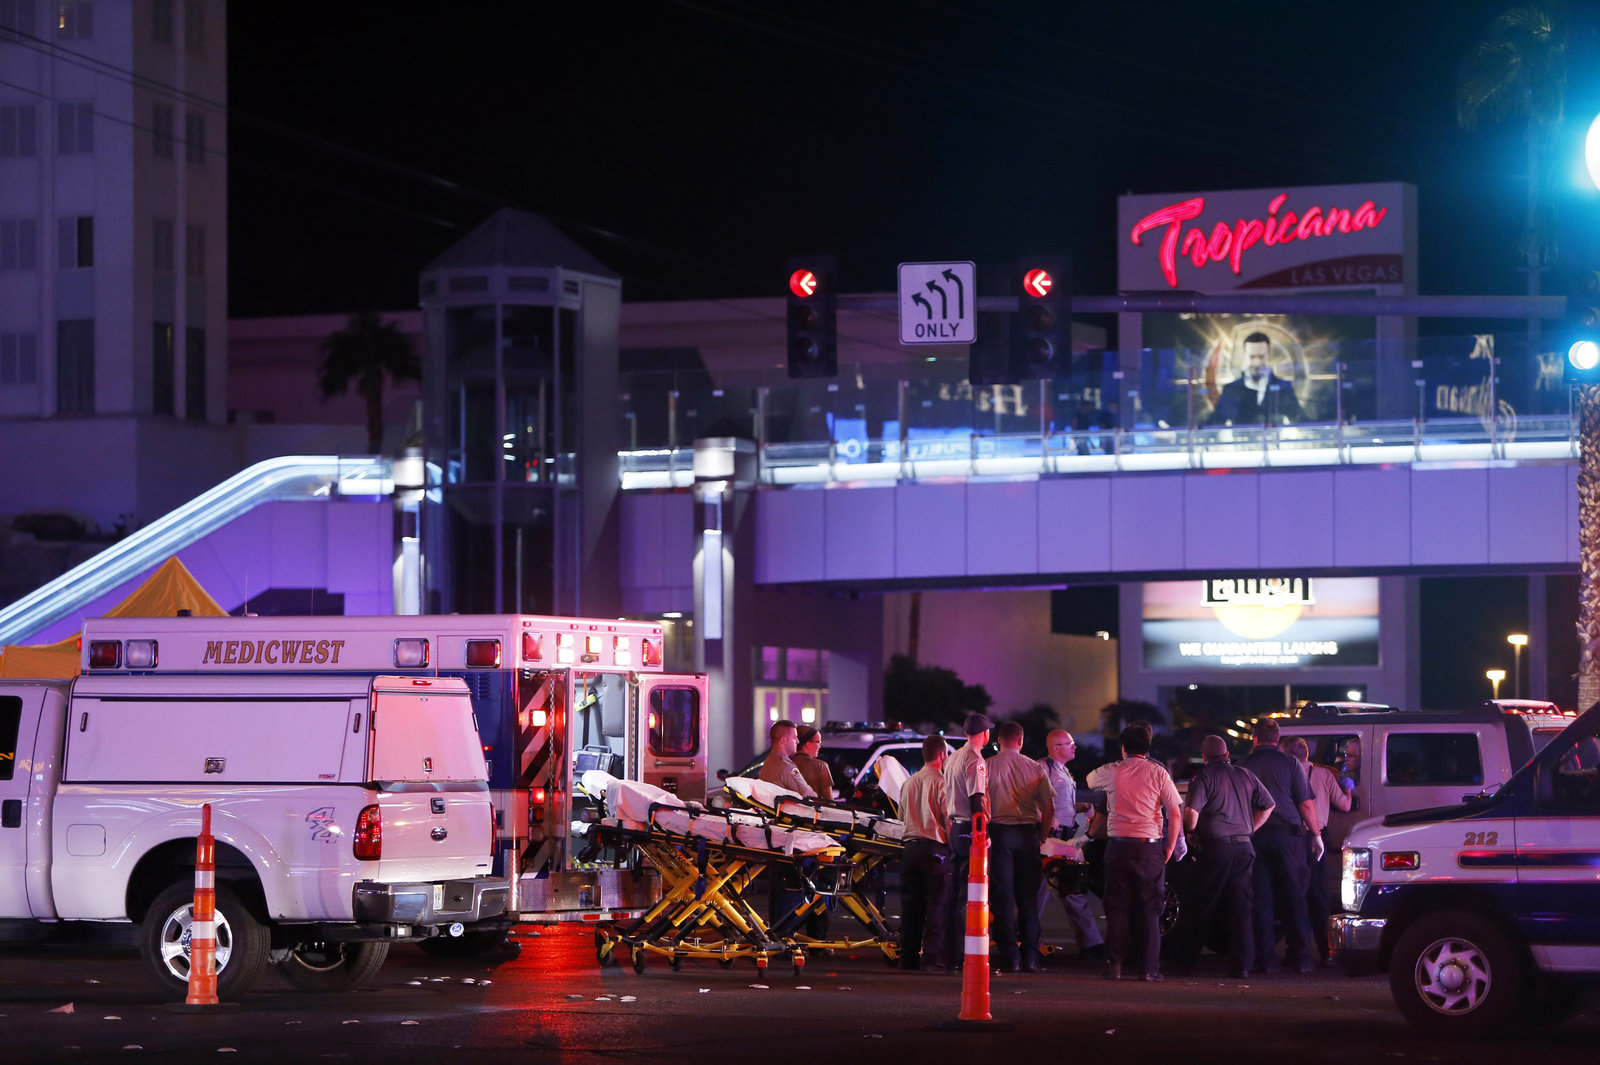 Medical workers set up a staging area near the Route 91 Harvest festival concert on the Las Vegas Strip on Sunday. Gunfire was reported around 10:08 p.m. local time, Clark County Sheriff Joe Lombardo said at a news briefing. (Steve Marcus/Courtesy of Las Vegas Sun)